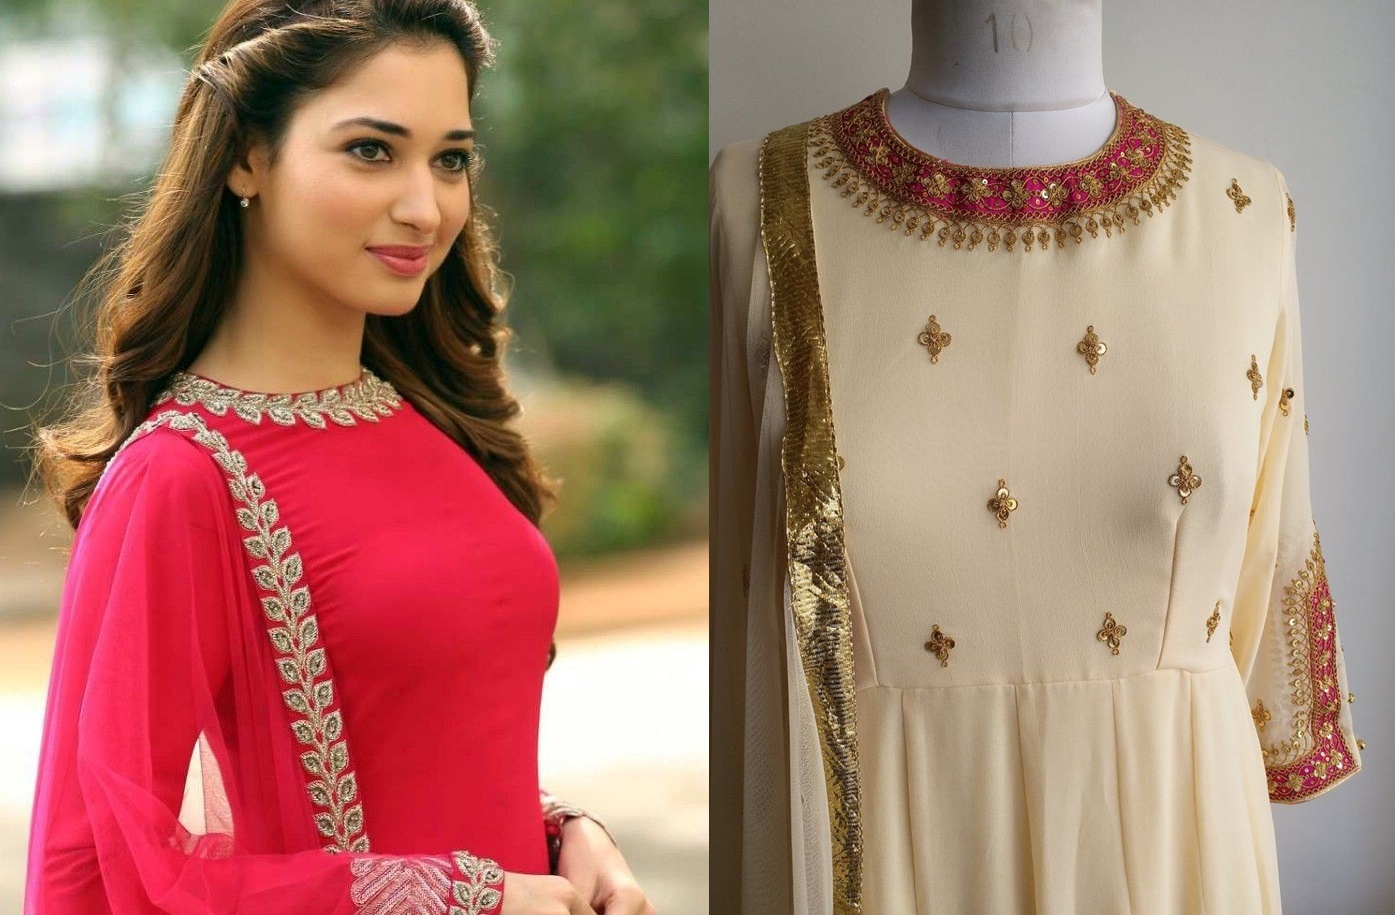 40 Amazing Kurti Neck Designs With Lace And Borders Bling Sparkle